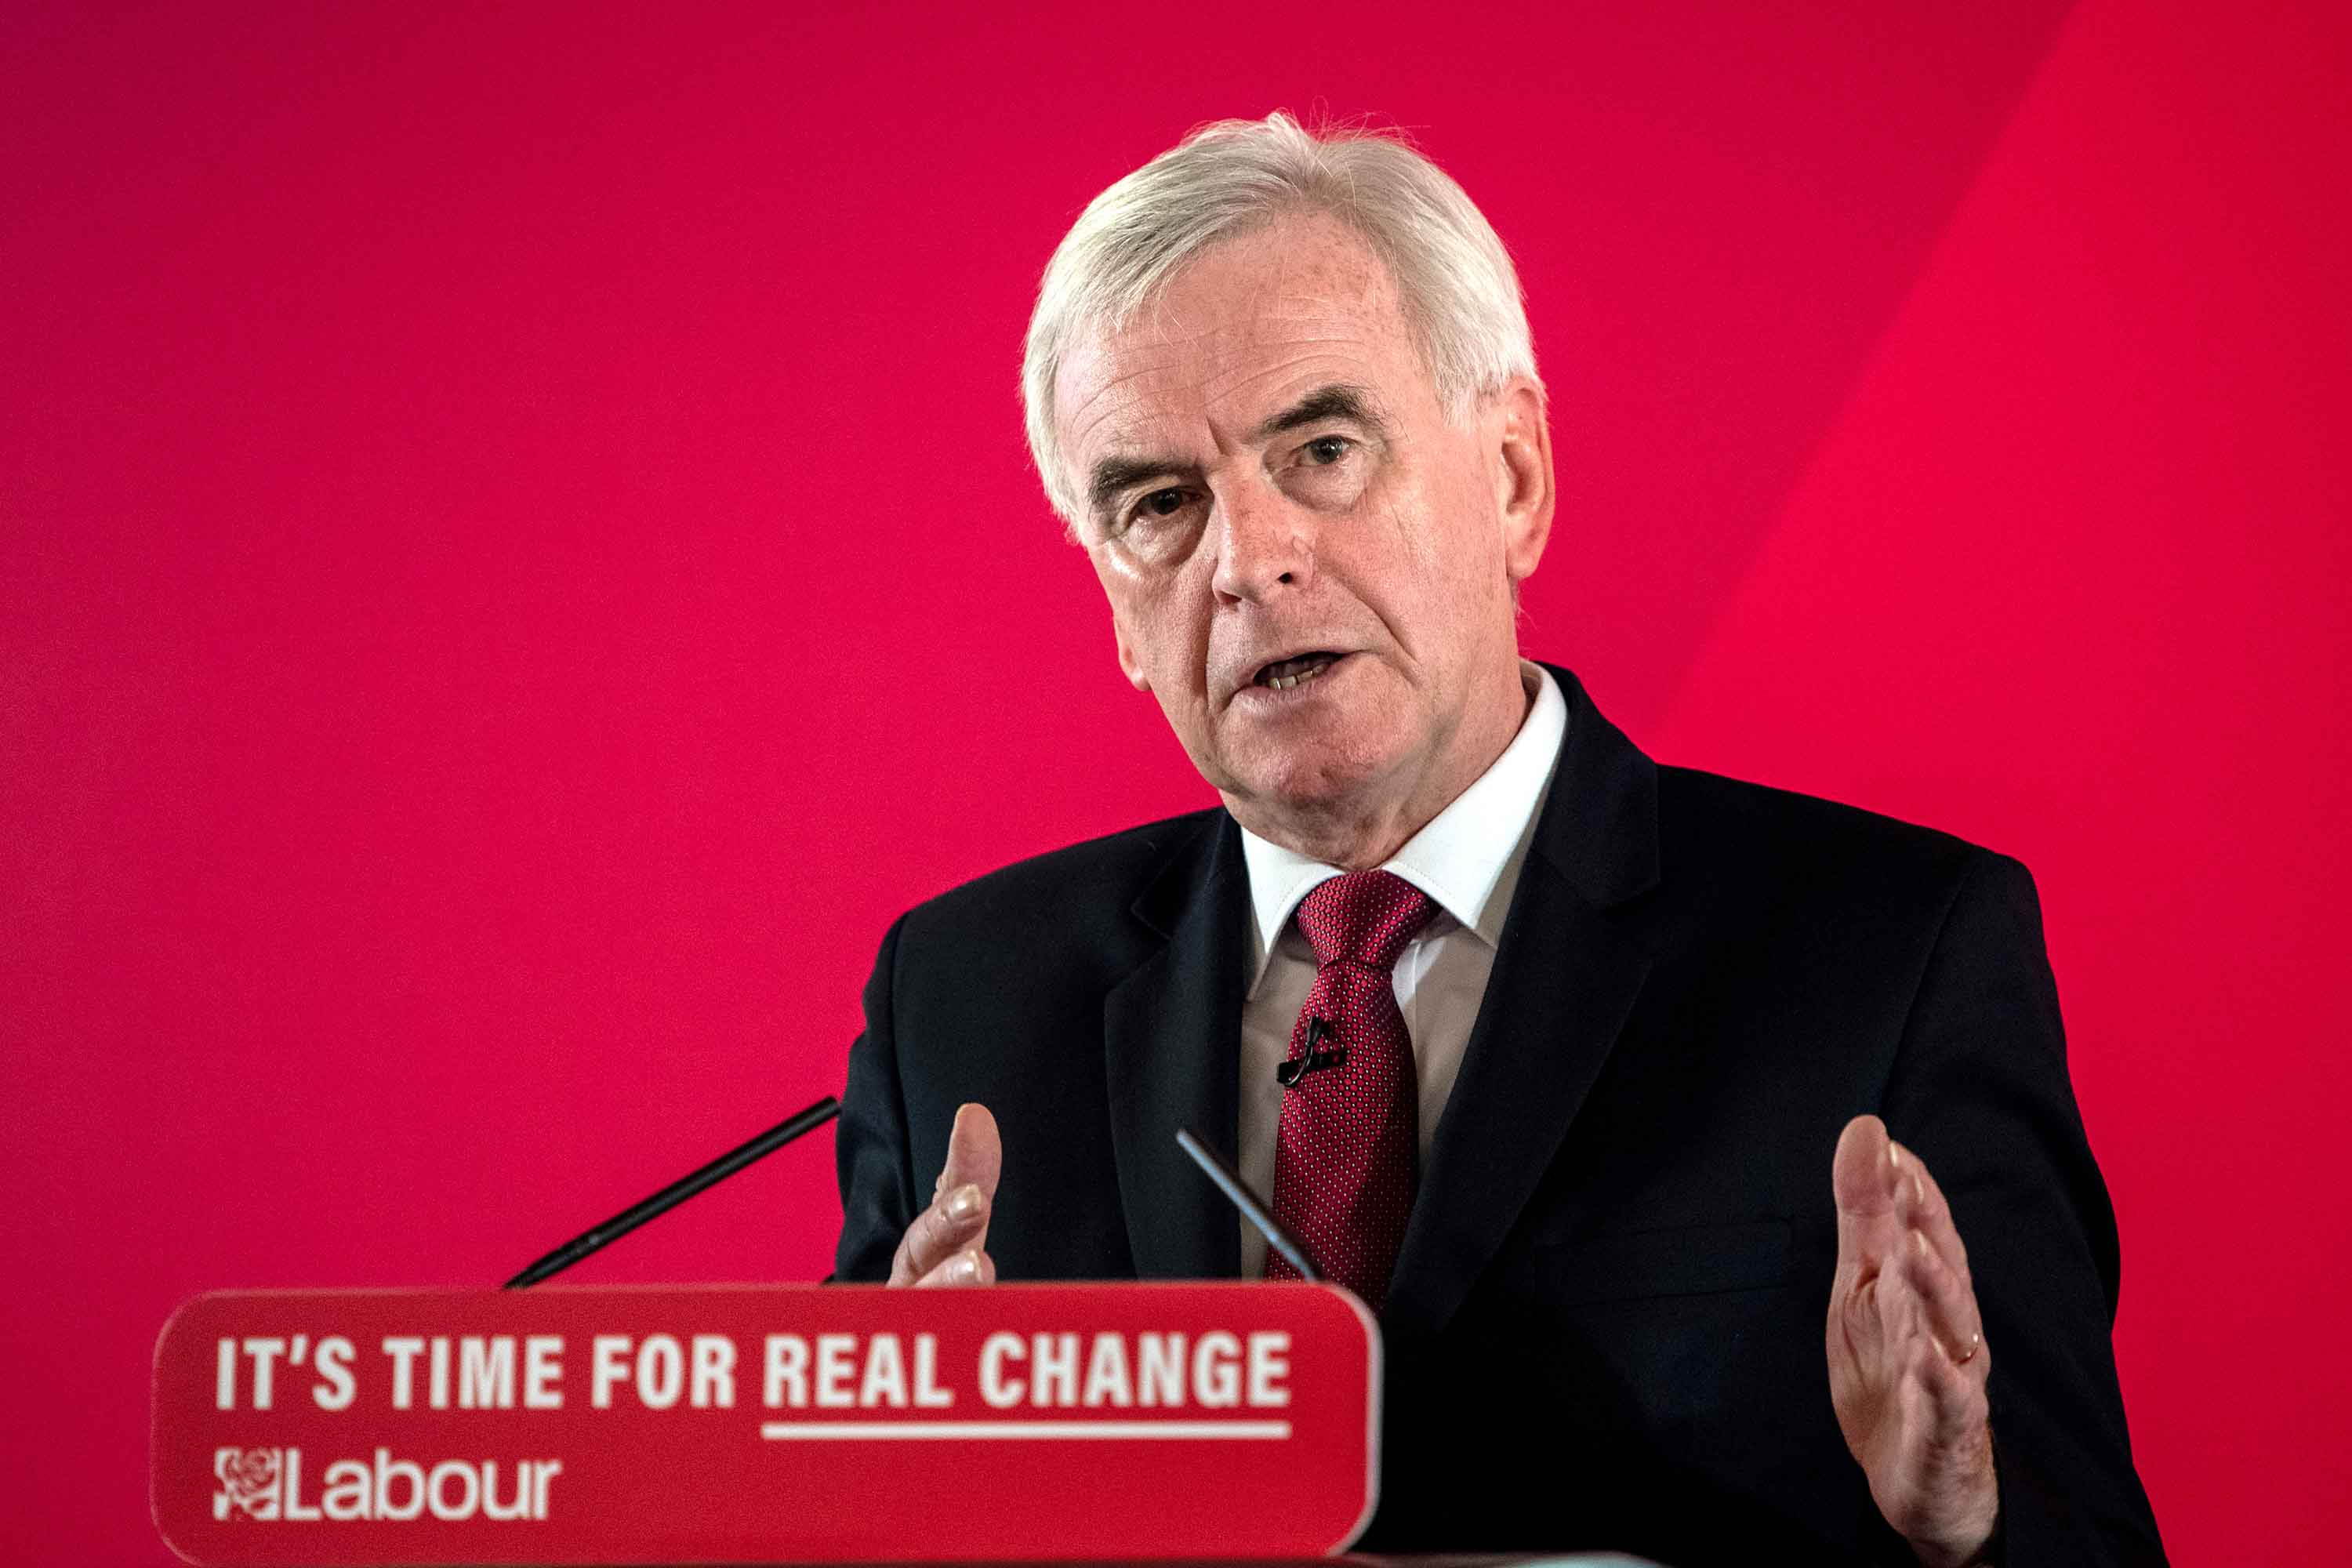 Shadow Chancellor of the Exchequer, John McDonnell, speaks at a press conference on December 9 in London. Photo: Chris J Ratcliffe/Getty Images